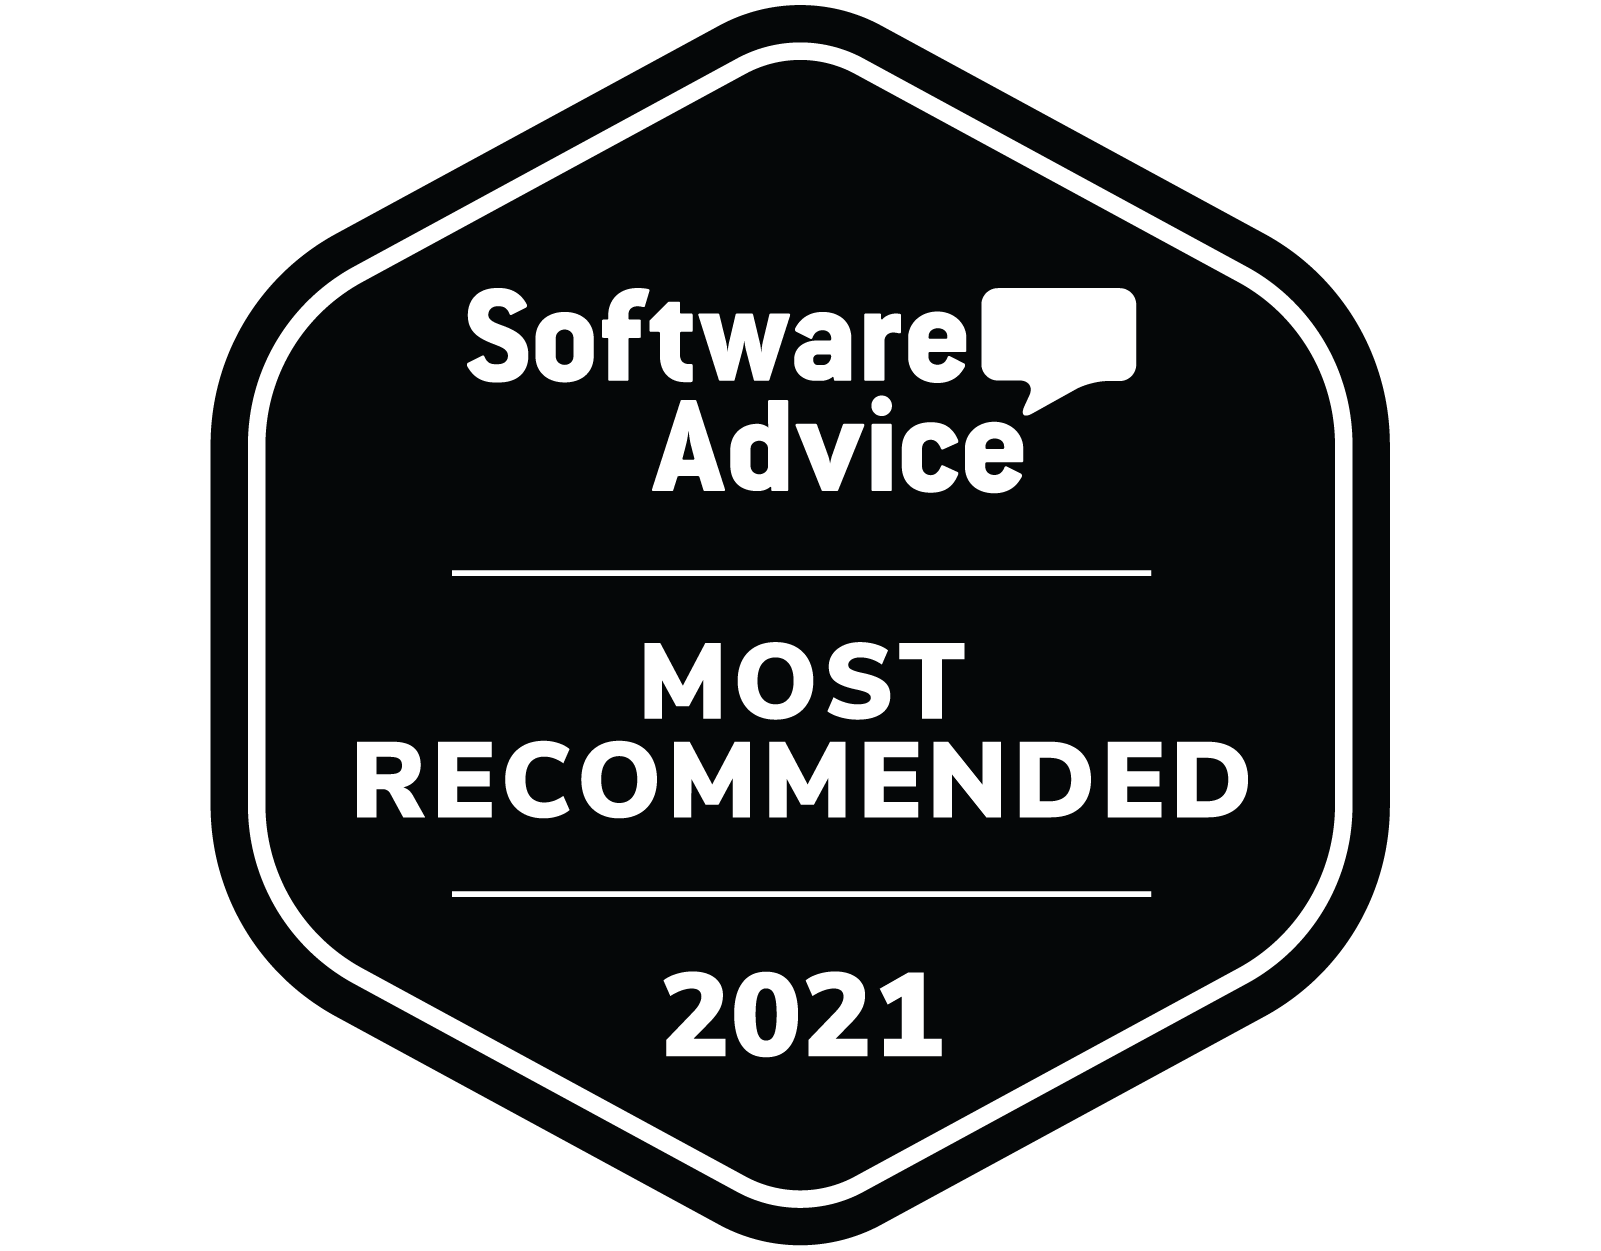 Software Advice Most Recommended for Optometry EMR Software Aug-21